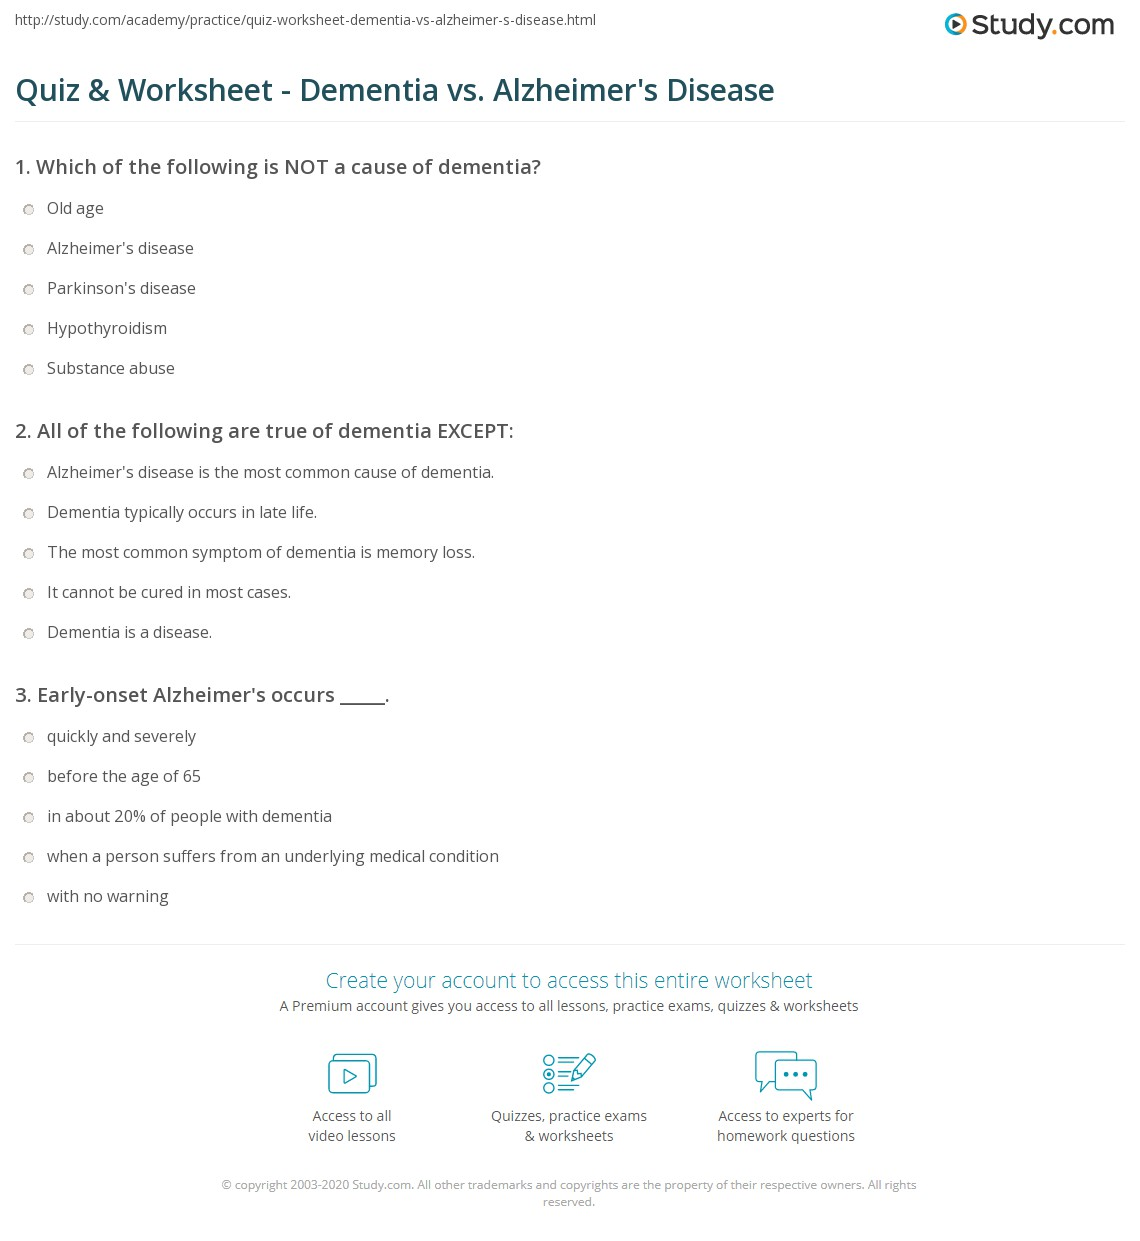 s a p alzheimers quiz Braintest ® is the same kind of cognitive screening instrument that you'd be given at a doctor's office, but one that's uniquely designed to detect early stage changes in cognition associated with alzheimer's disease, dementia, and mild cognitive impairment.